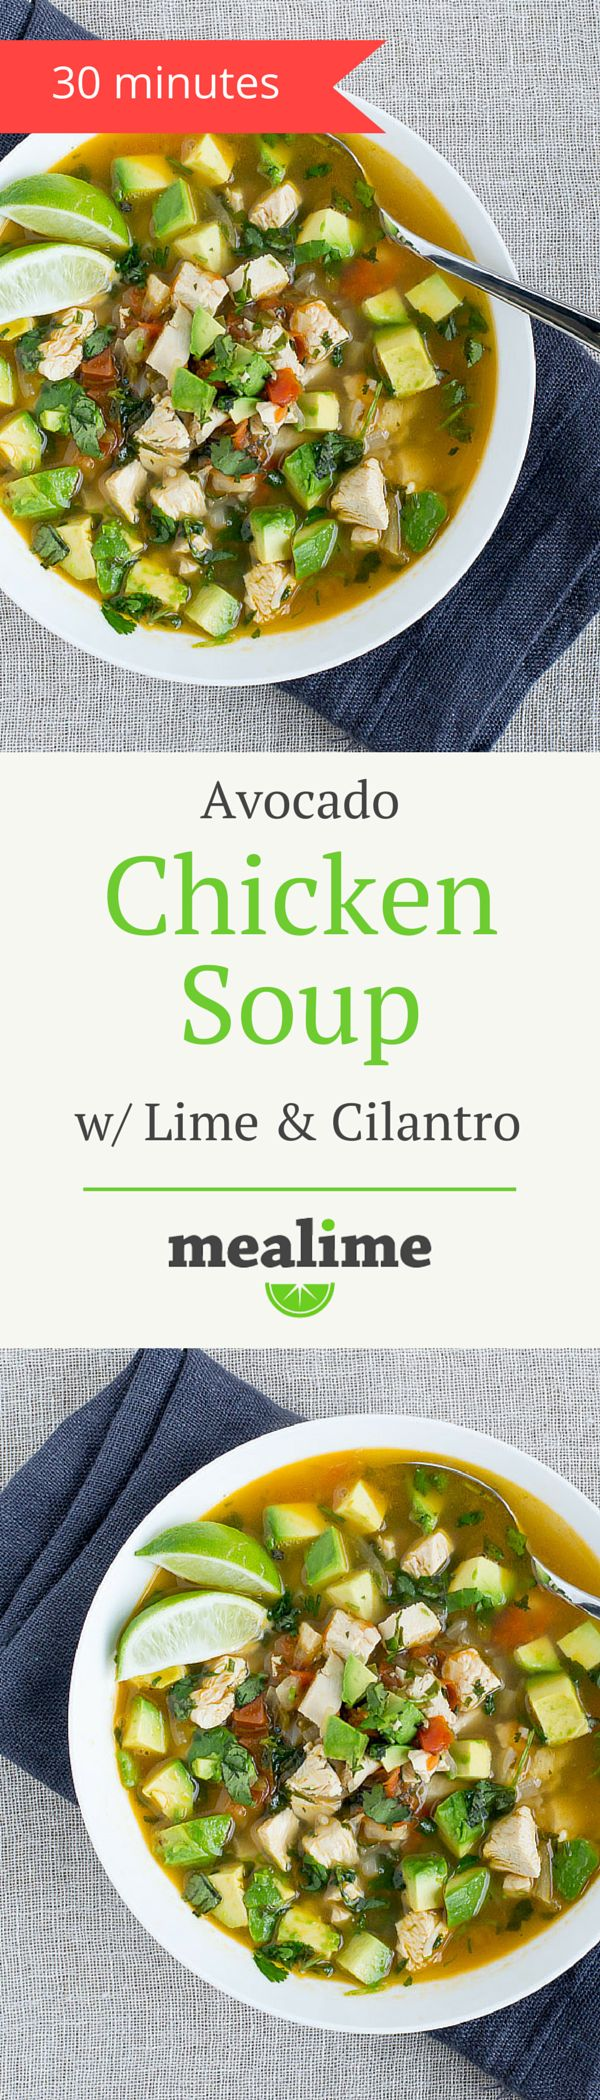 Use fake Chik'n and this would be vegan ~~~ Chicken Avocado Soup with Lime & Cilantro via @mealime - a quick and healthy recipe for one or two. Flexitarian, keto, low carb, paleo/primal, dairy free, fish free, gluten free, peanut free, shellfish free, and tree nut free. #mealplanning